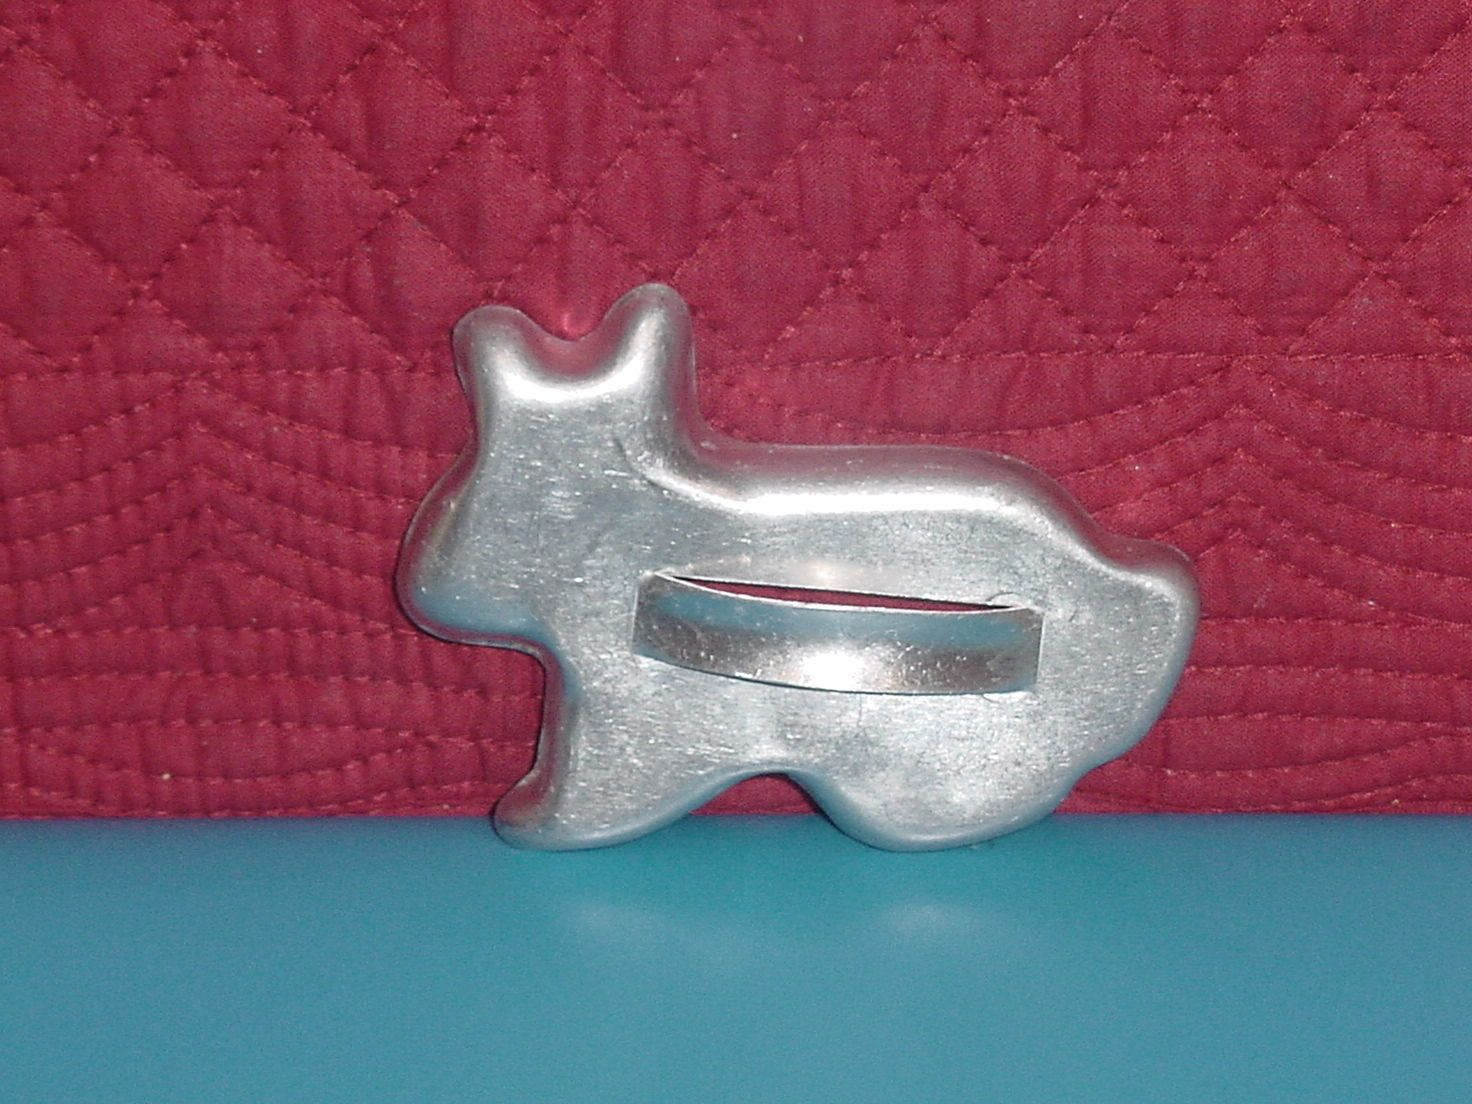 3 Vintage Cookie Cutters Vintage Kitchen Decor Angel Cookie Reindeer Cookie Mold Holiday Copper Colored Aluminum Christmas Cookie Cutters